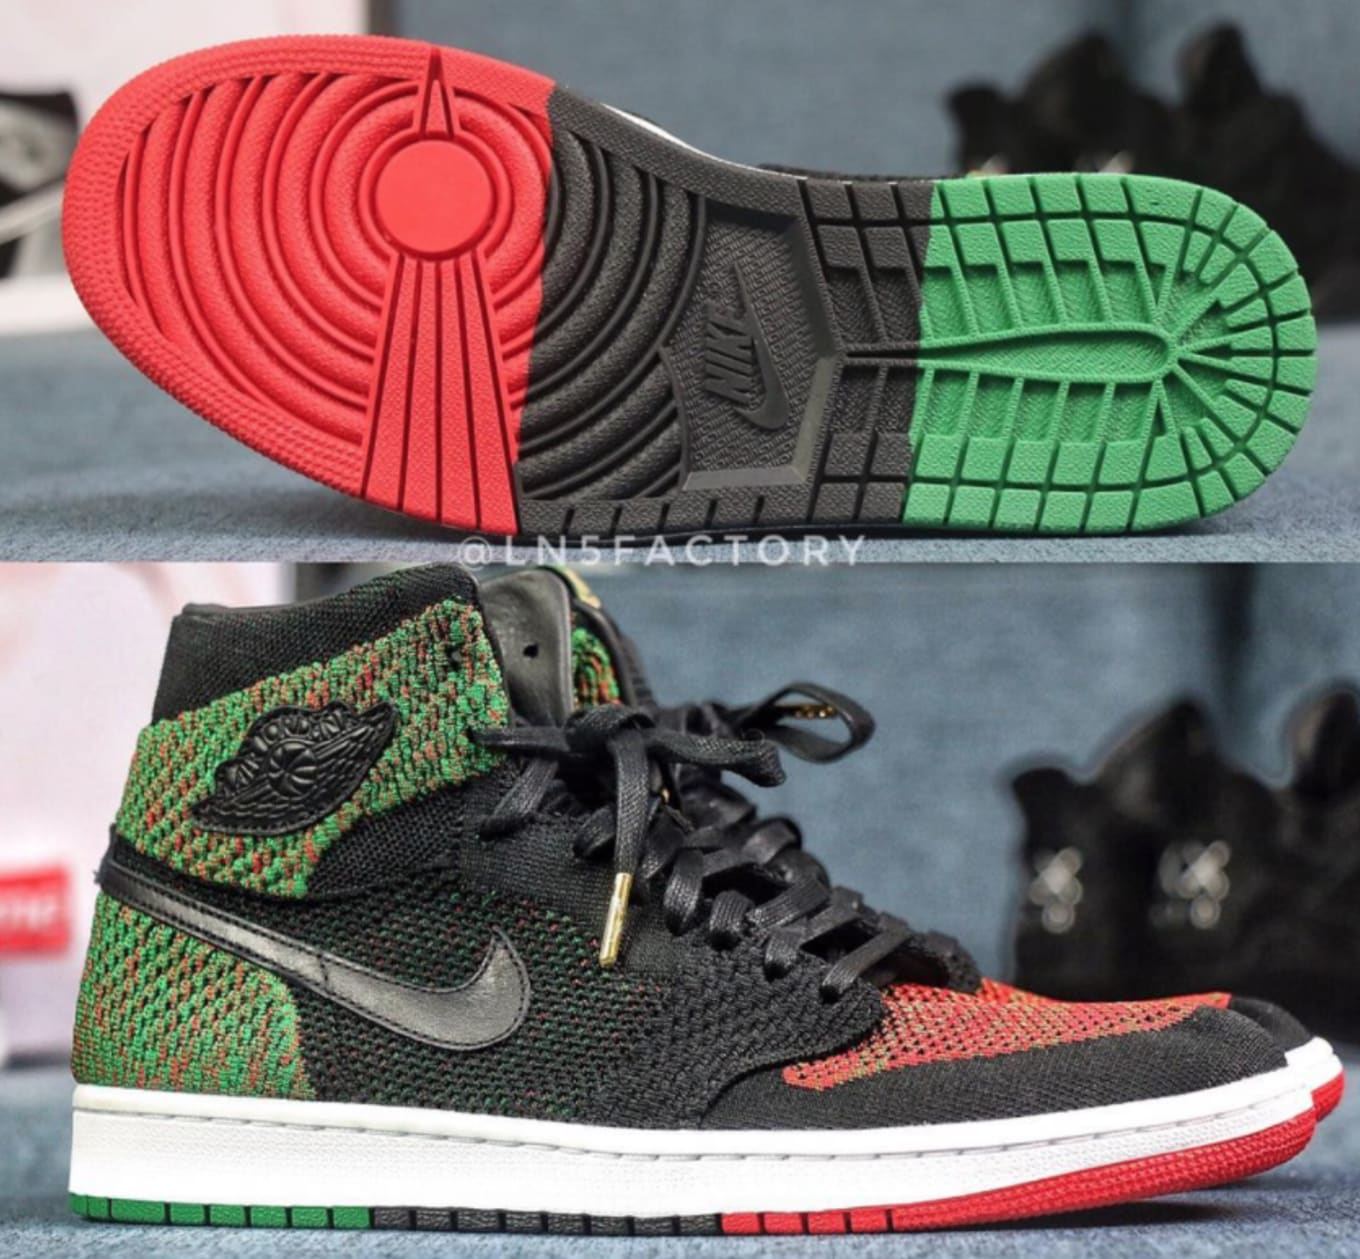 784049a21435 First look at the  BHM  Air Jordan 1 Flyknit.